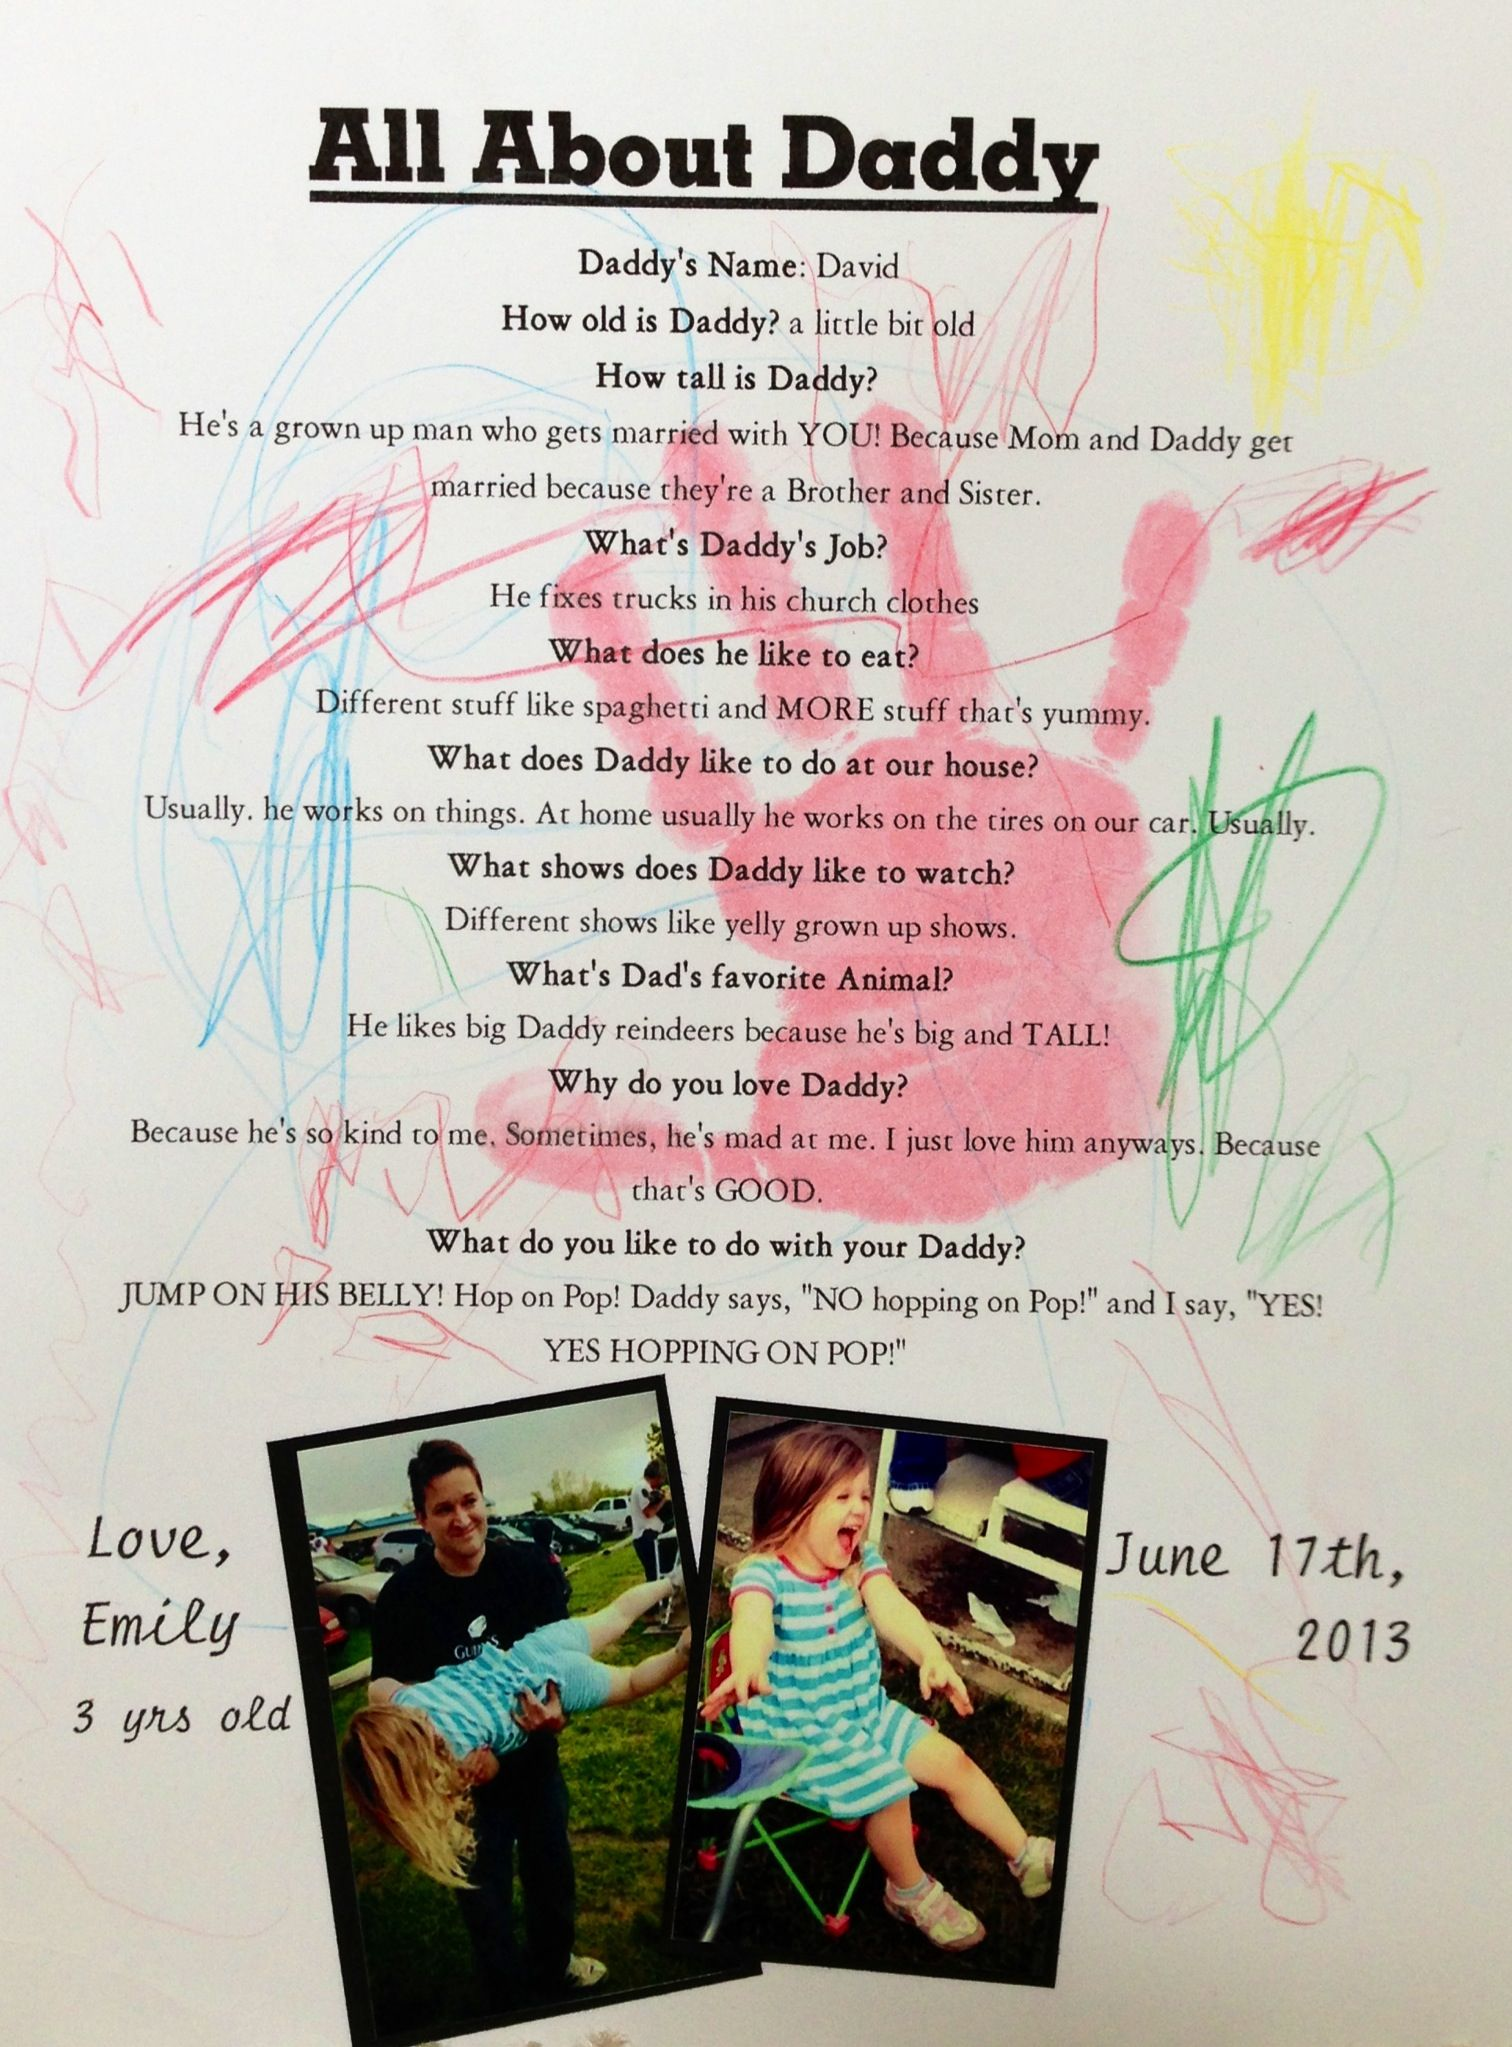 All In One Fathers Day Keepsake From Child Artwork Handprint Photos And Daddy Survey